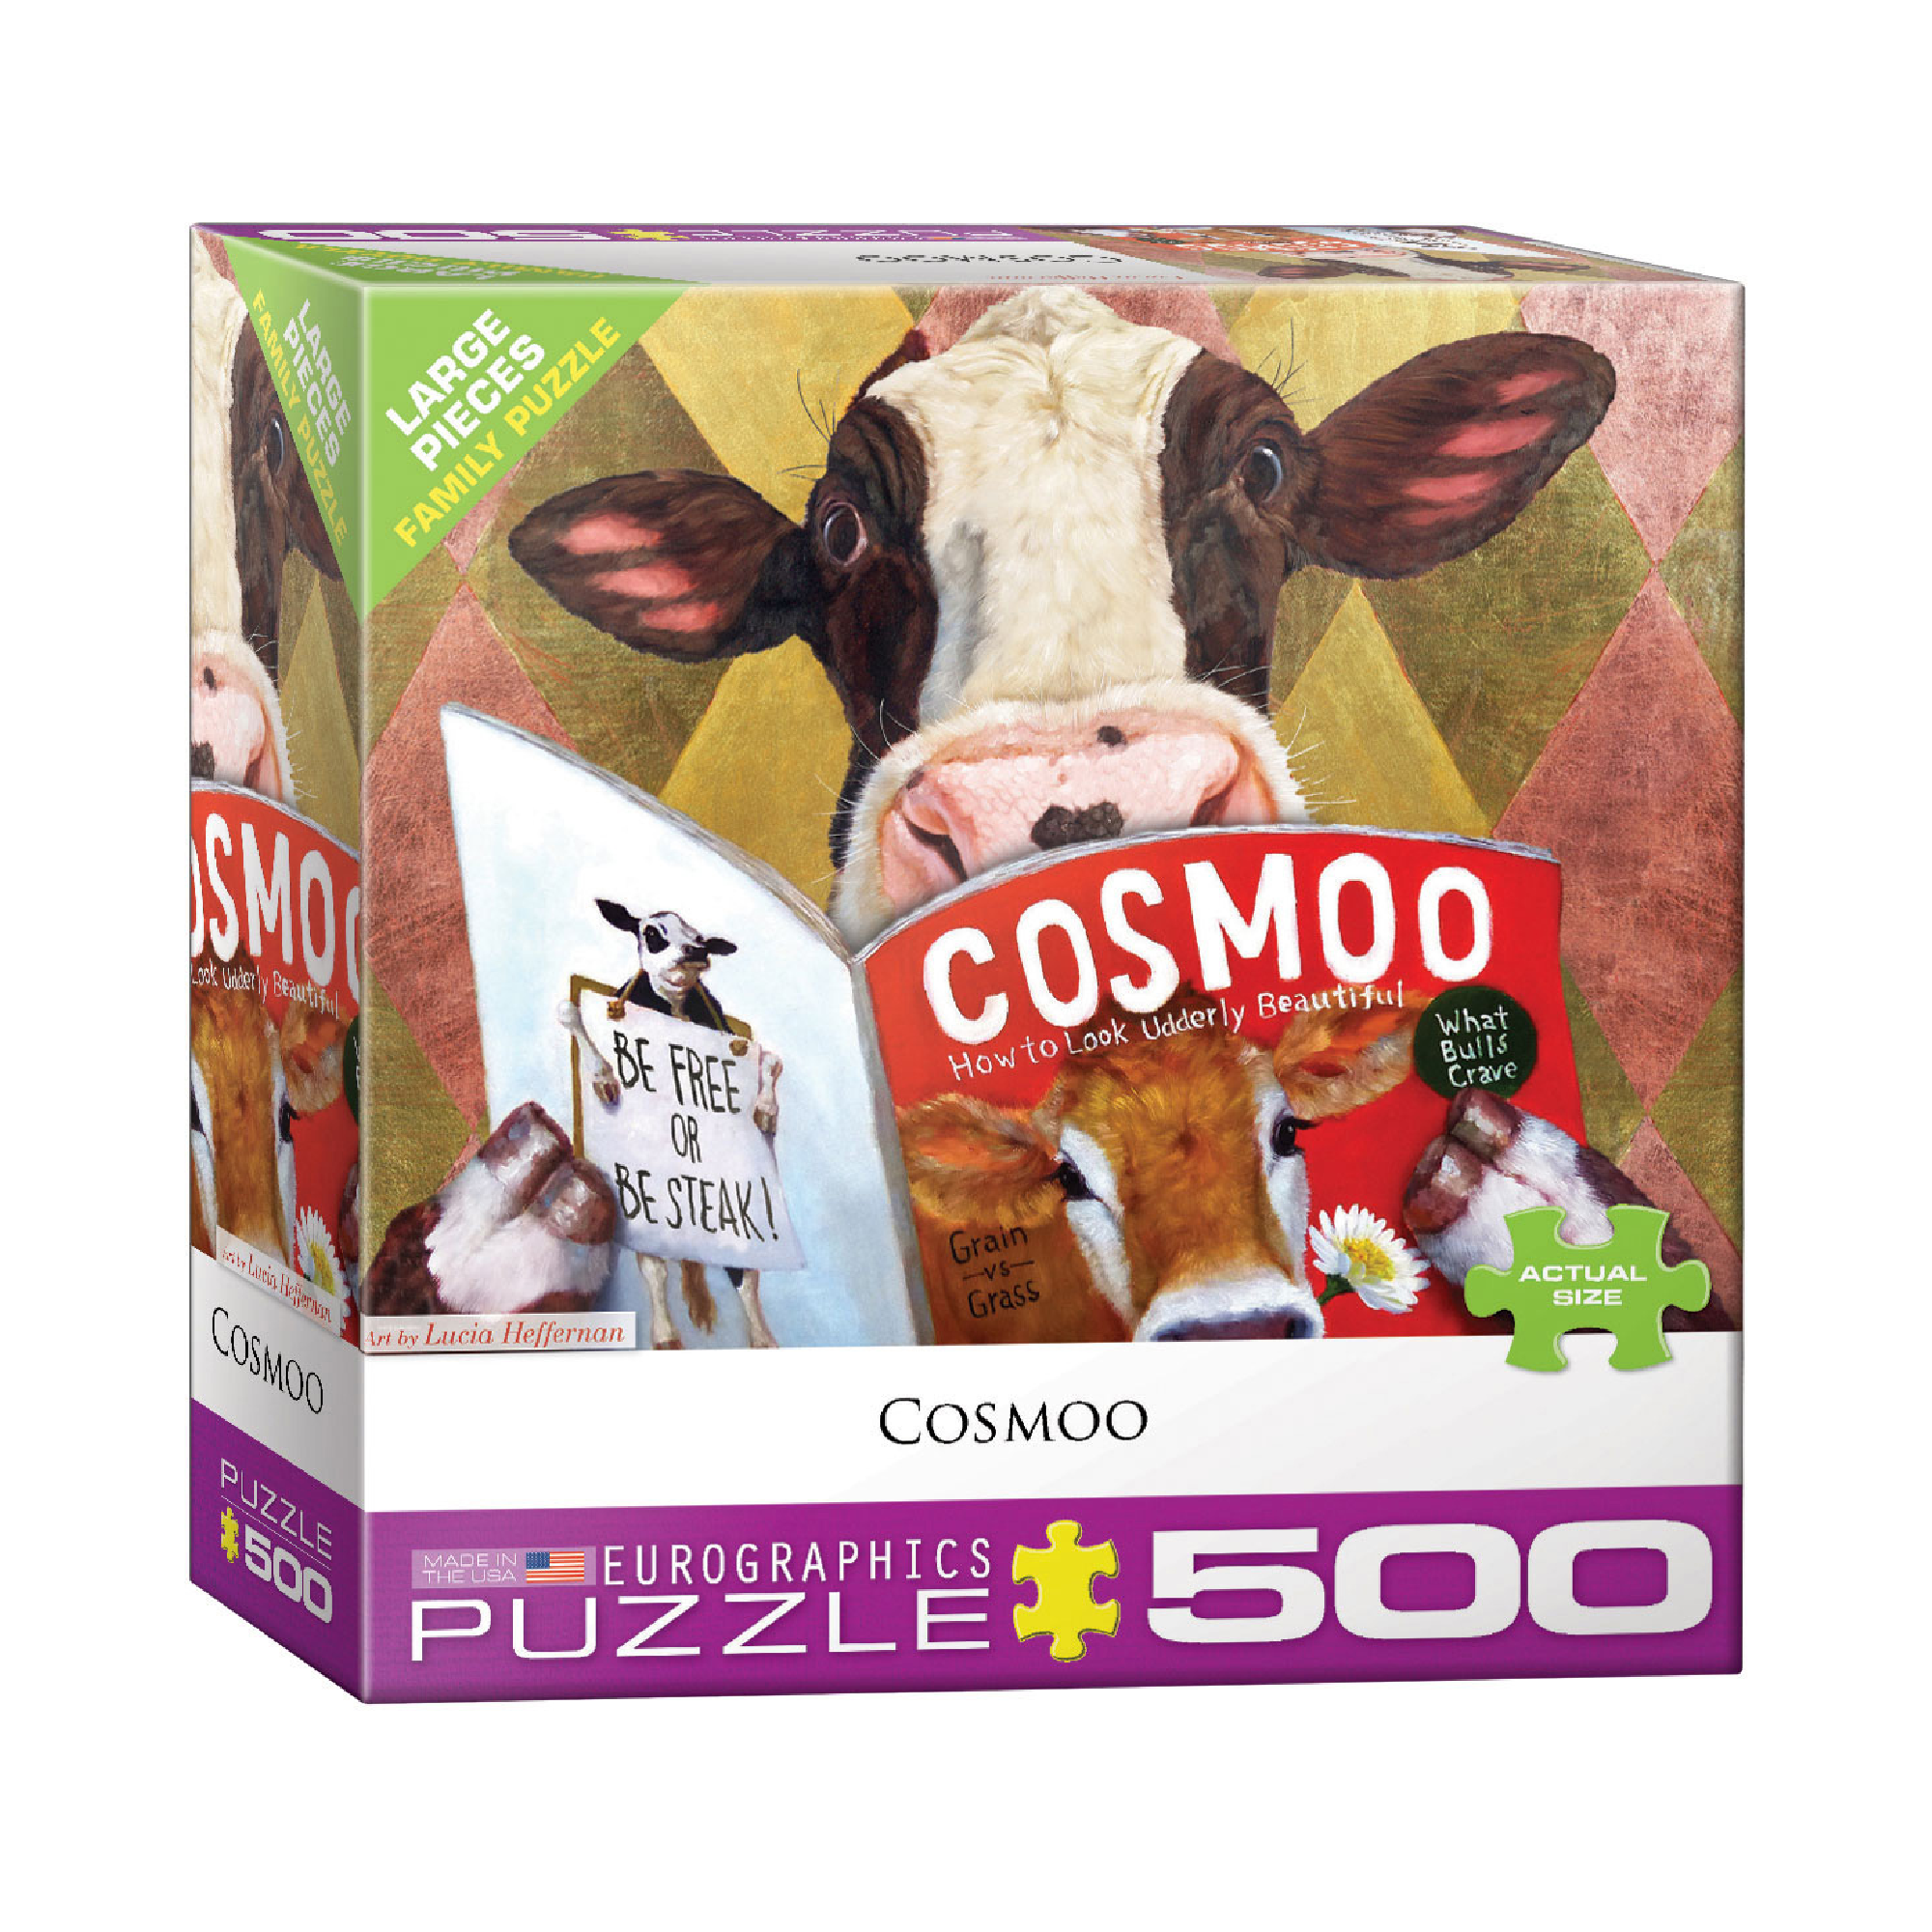 Eurographics Puzzle 500: Cosmoo by Lucia Heffernan